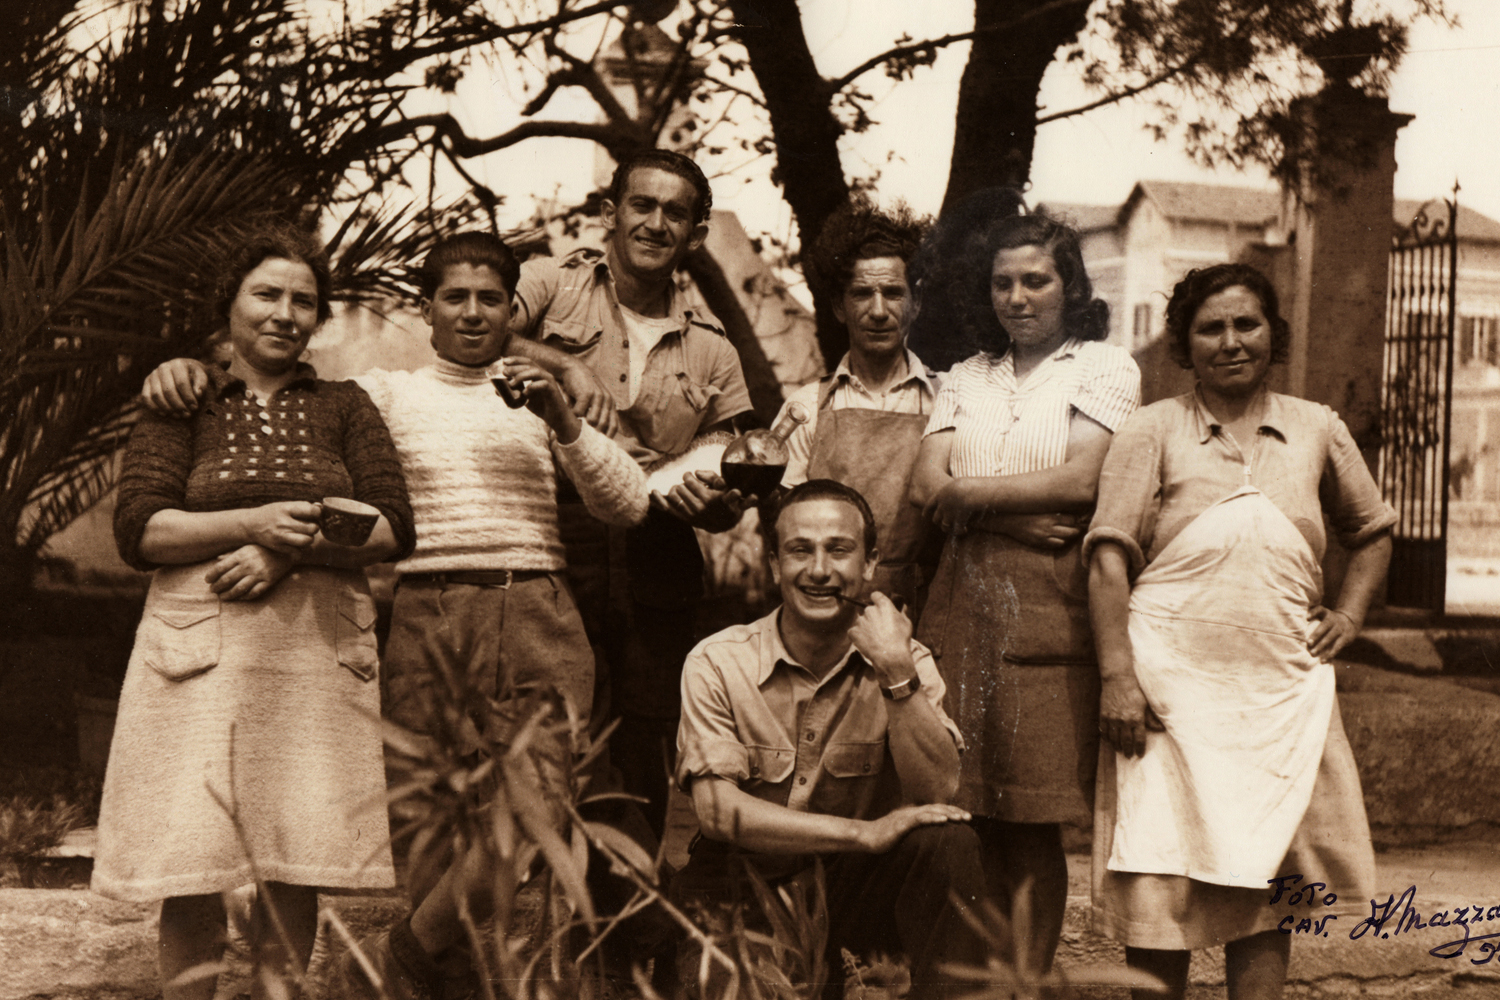 A group of Jewish volunteers and locals seen in Villa Filograna in Santa Maria al Bagno, which was used as a canteen and a recreational centre. (From the collection of Paolo Pisacane)